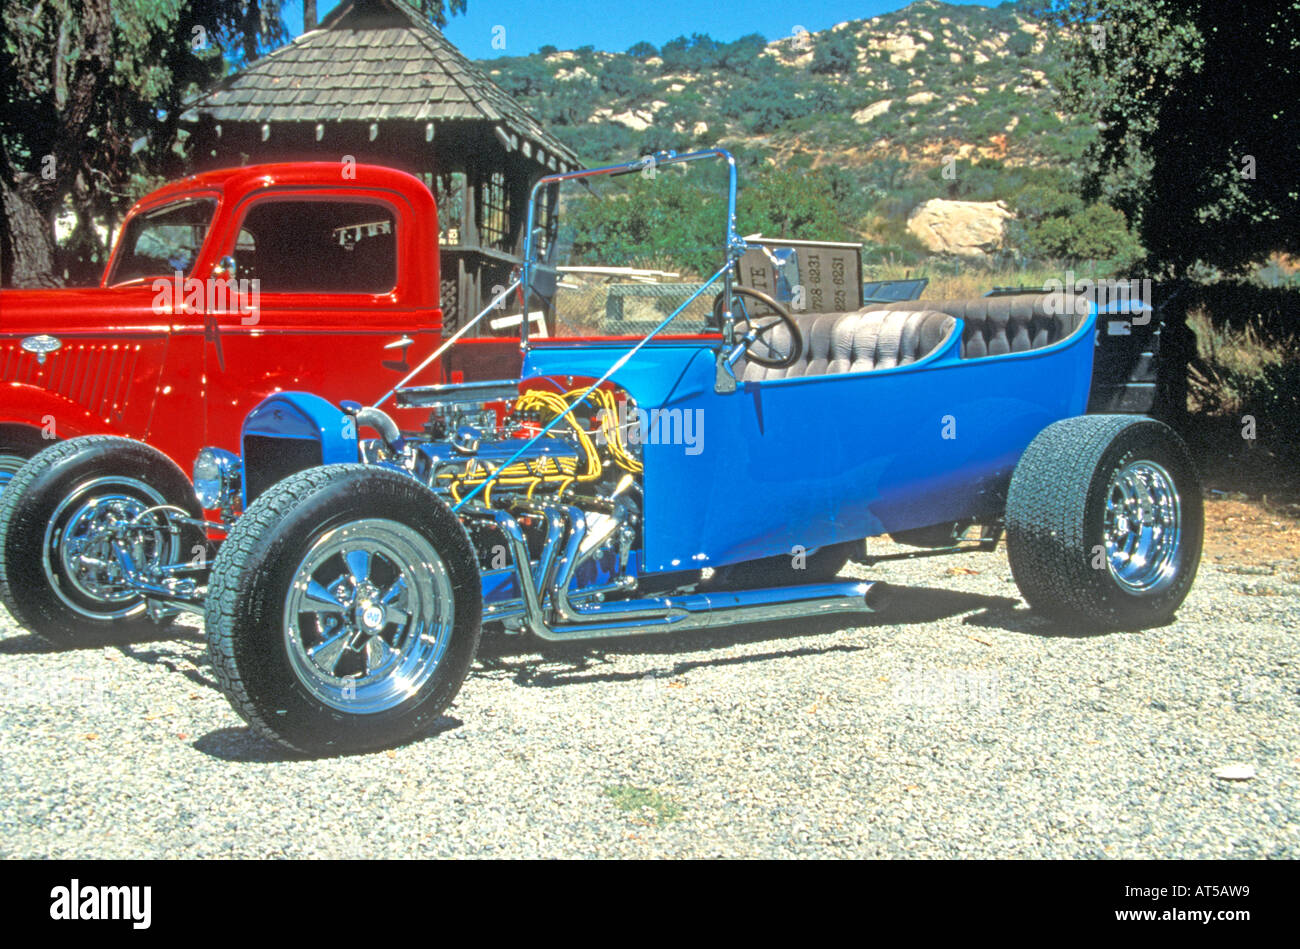 Blue V8 open top hot rod Stock Photo, Royalty Free Image: 9261336 ...